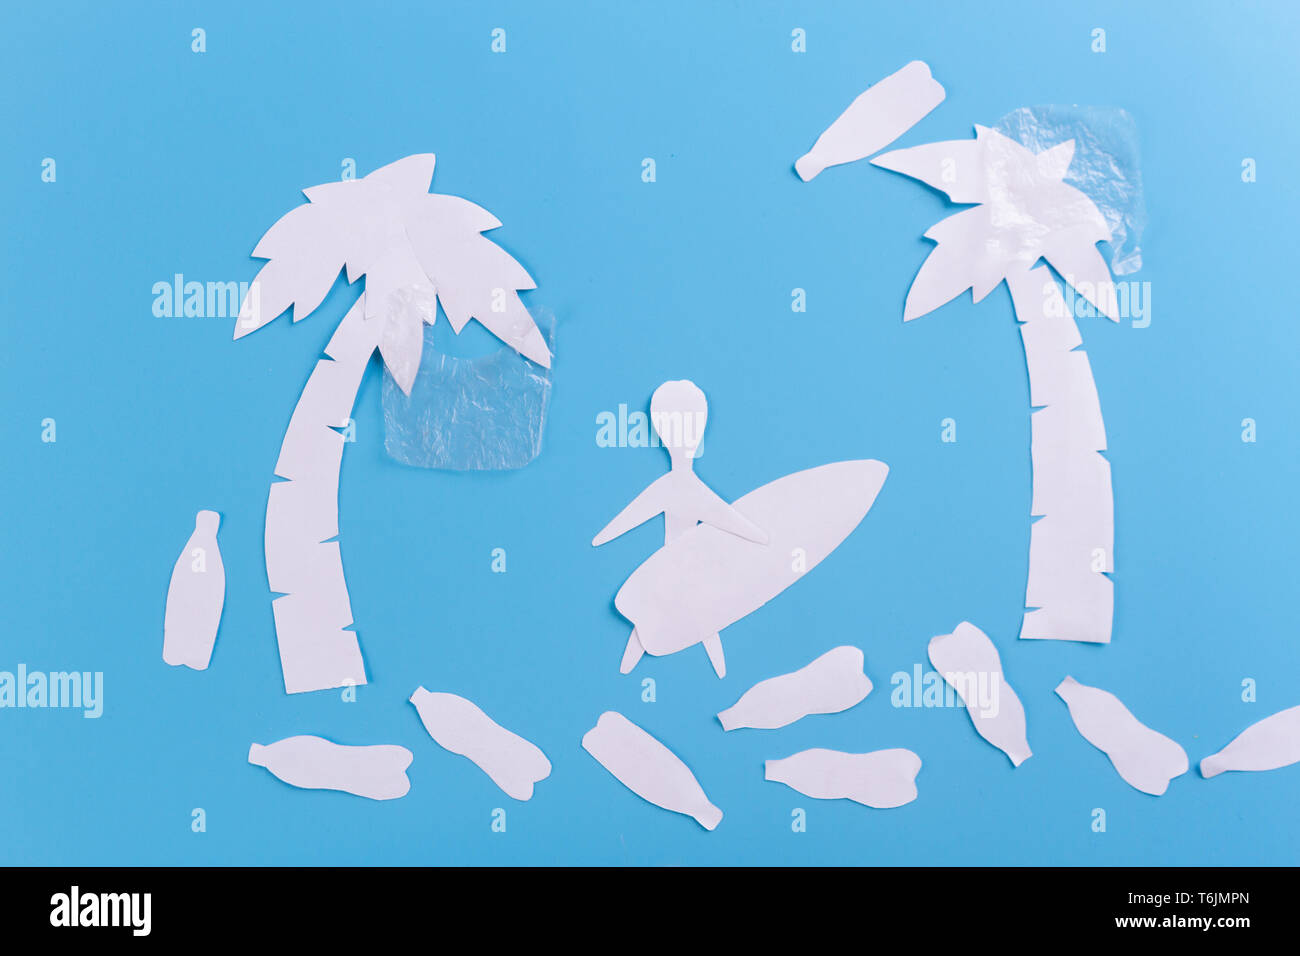 Plastic pollution in ocean concept. paper cut - Stock Image